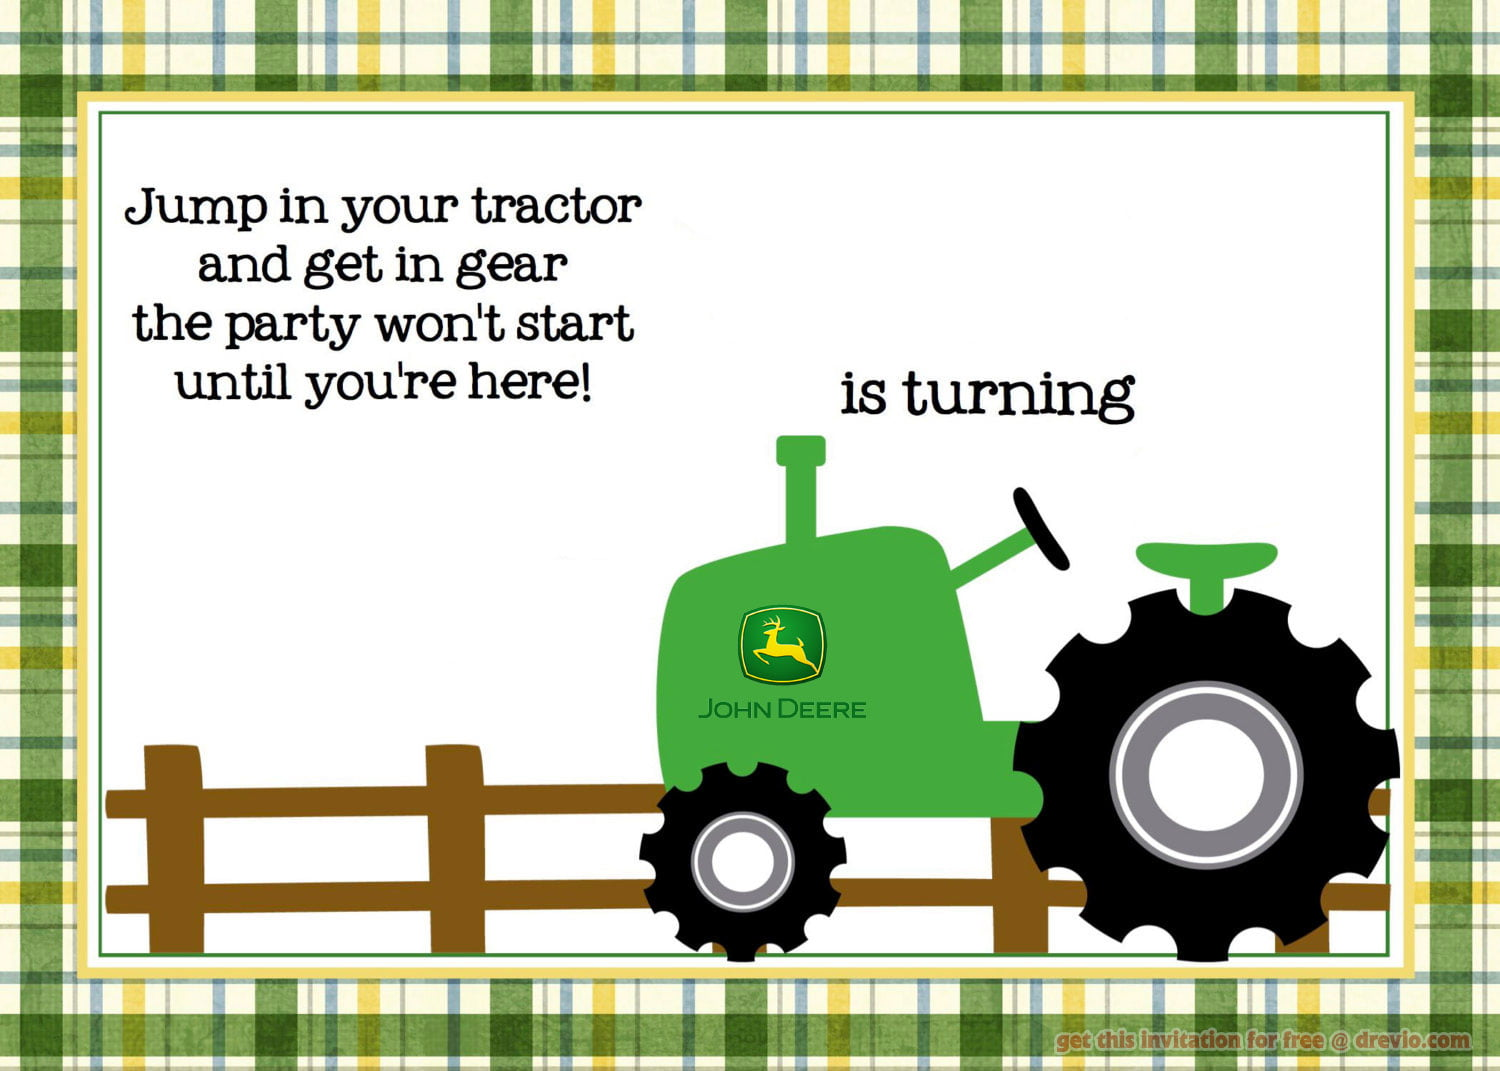 Free-Printable-John-Deere-Tractor-Birthday-Invitation